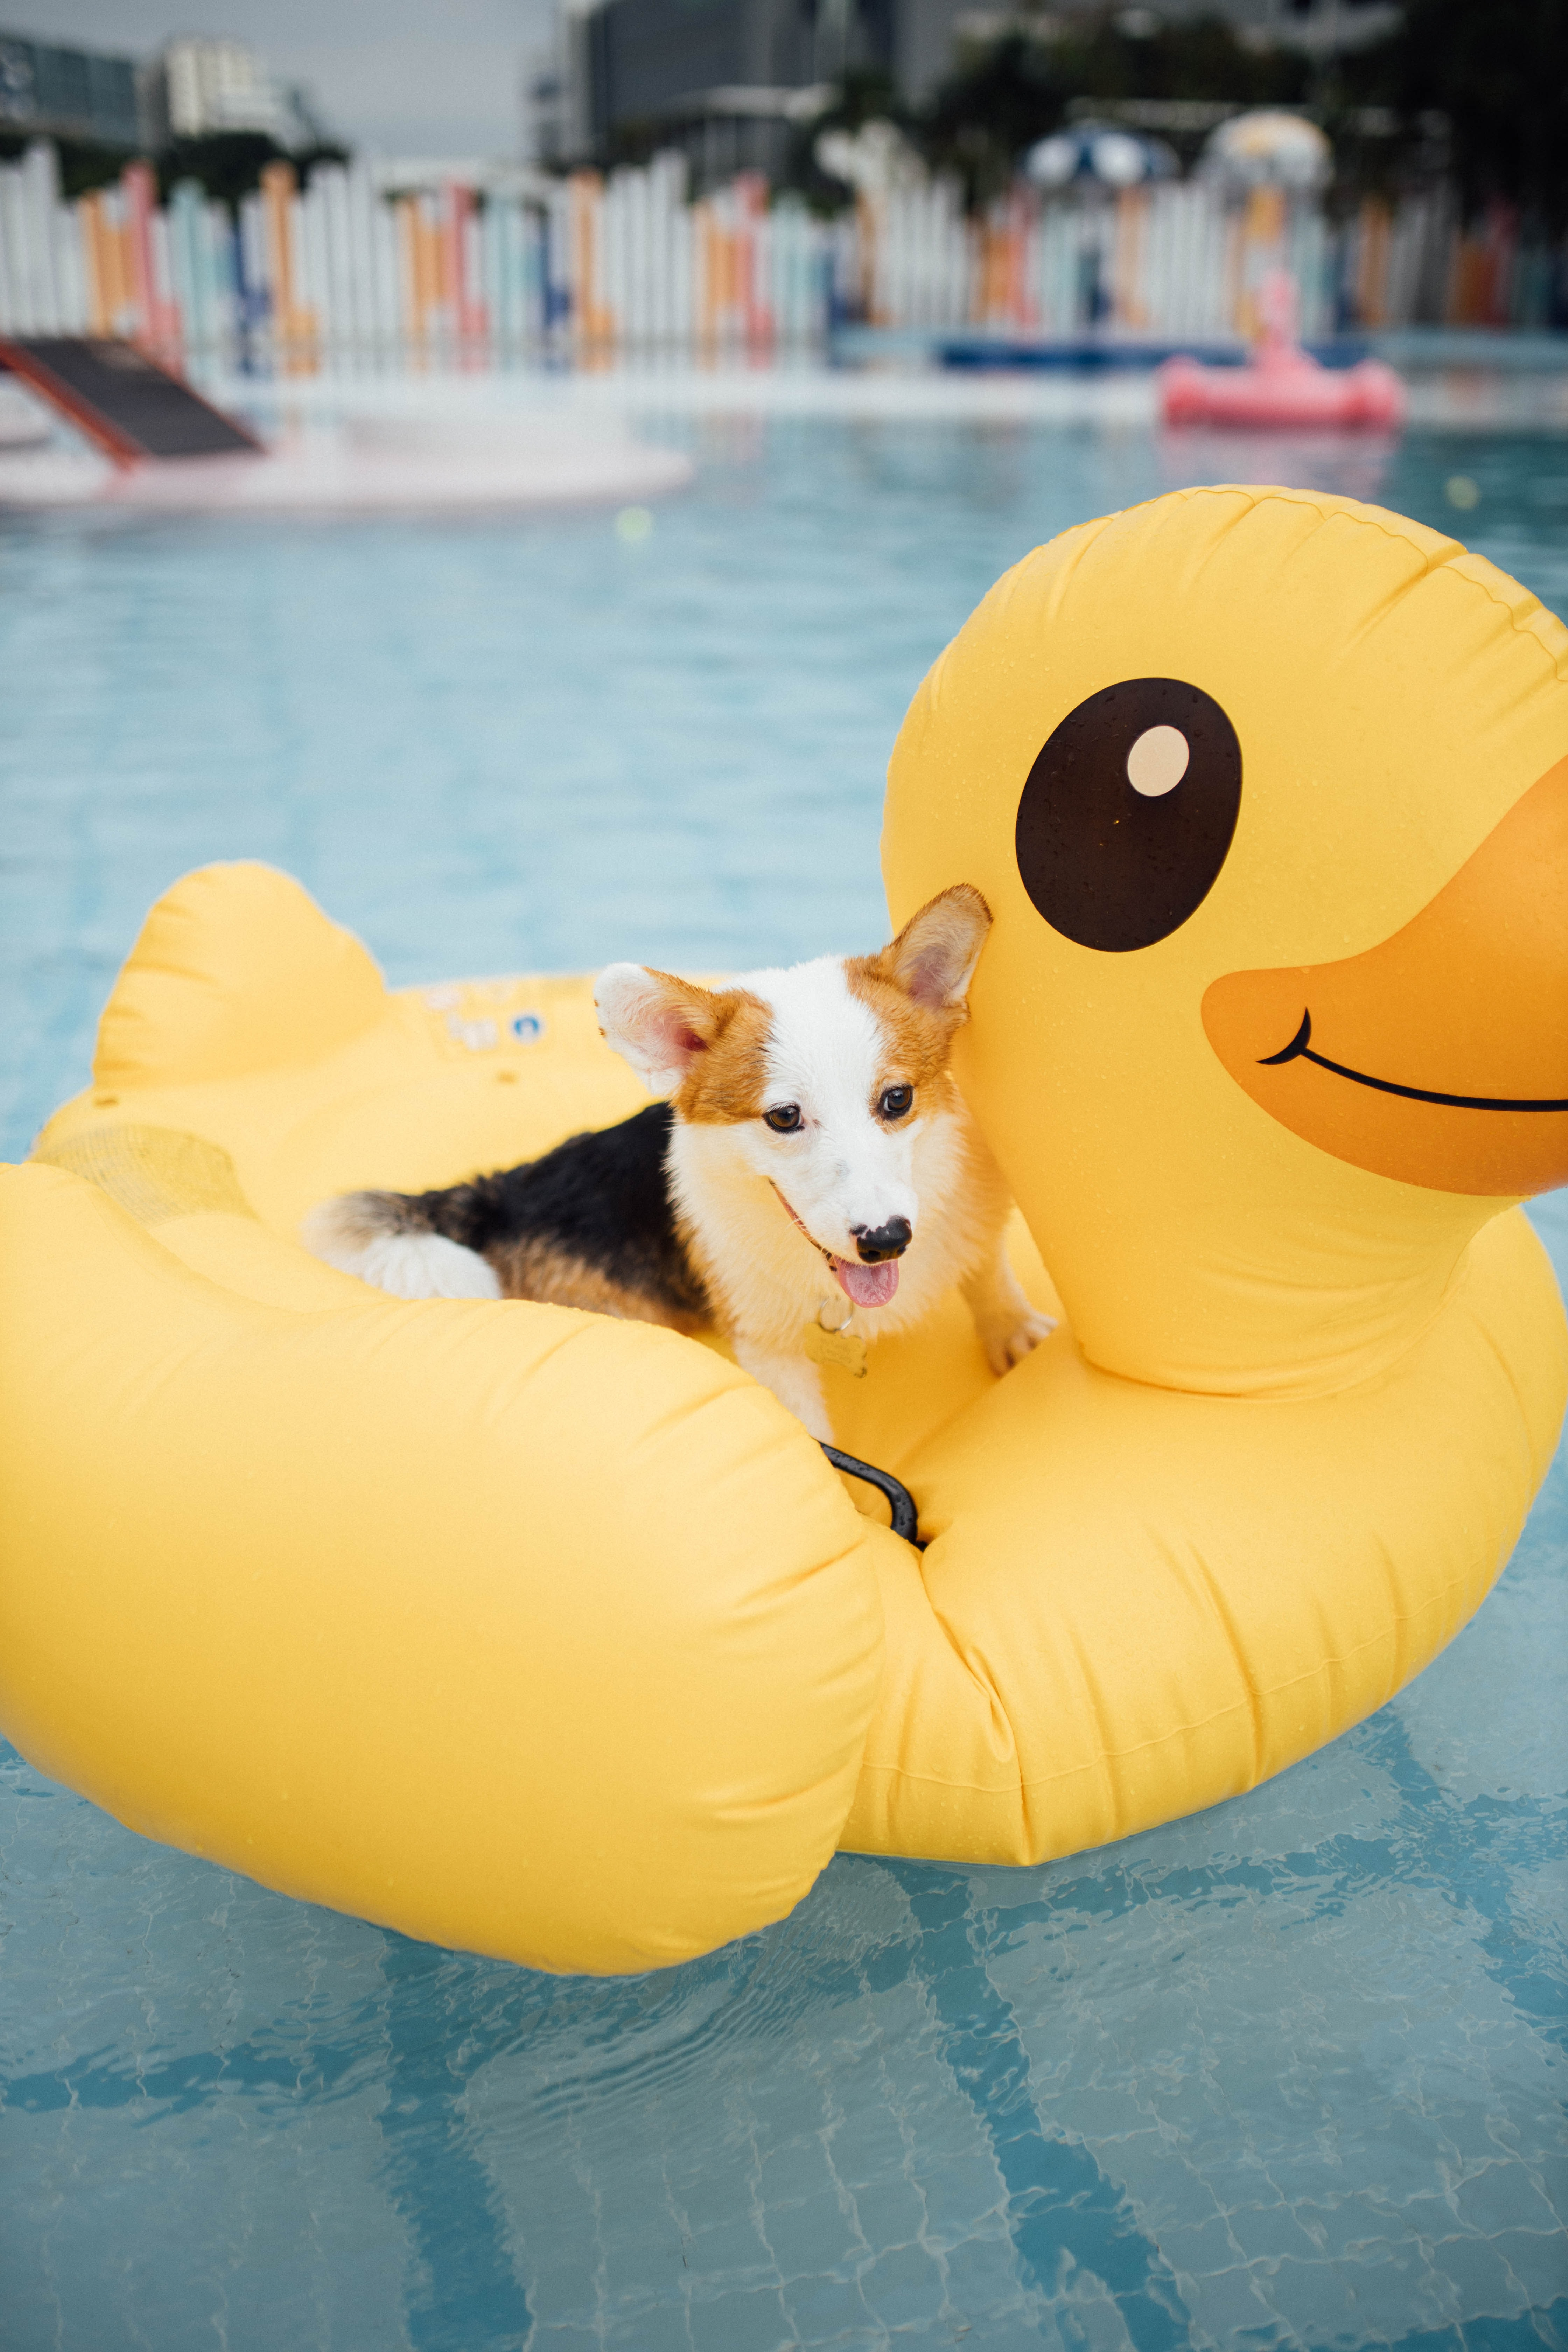 133961 download wallpaper Animals, Corgi, Dog, Pet, Inflatable Circle, Pool, Nice, Sweetheart screensavers and pictures for free